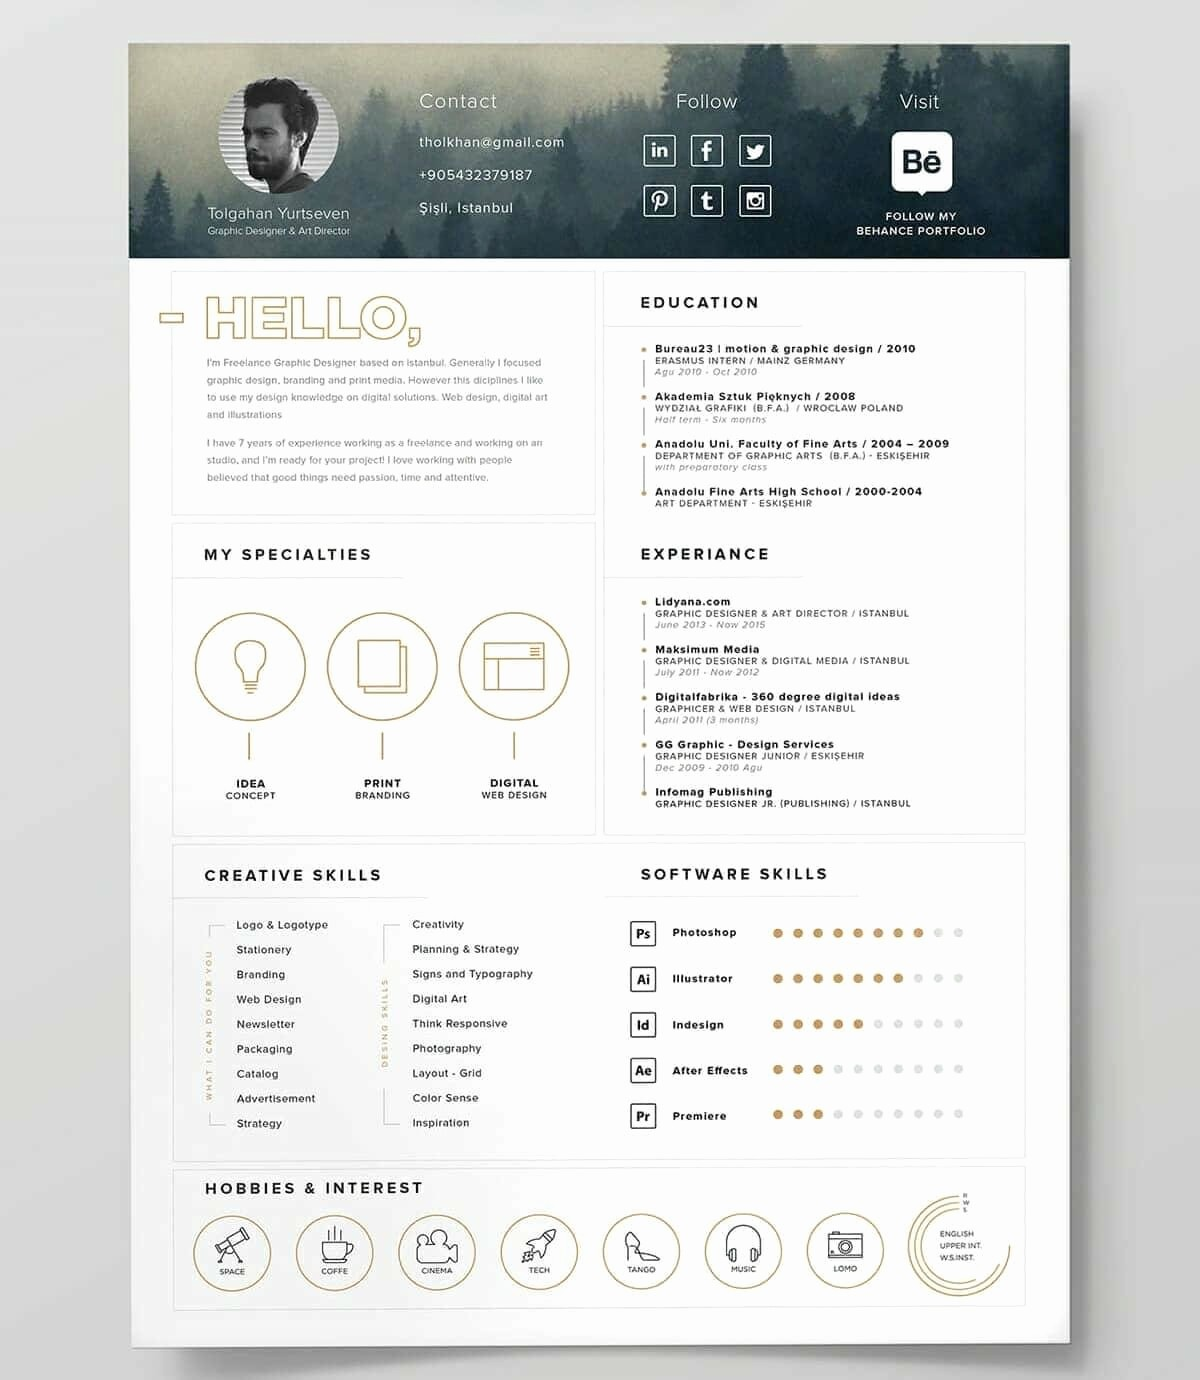 Best Free Word Resume Templates Elegant Best Resume Templates 15 Examples to Download & Use Right